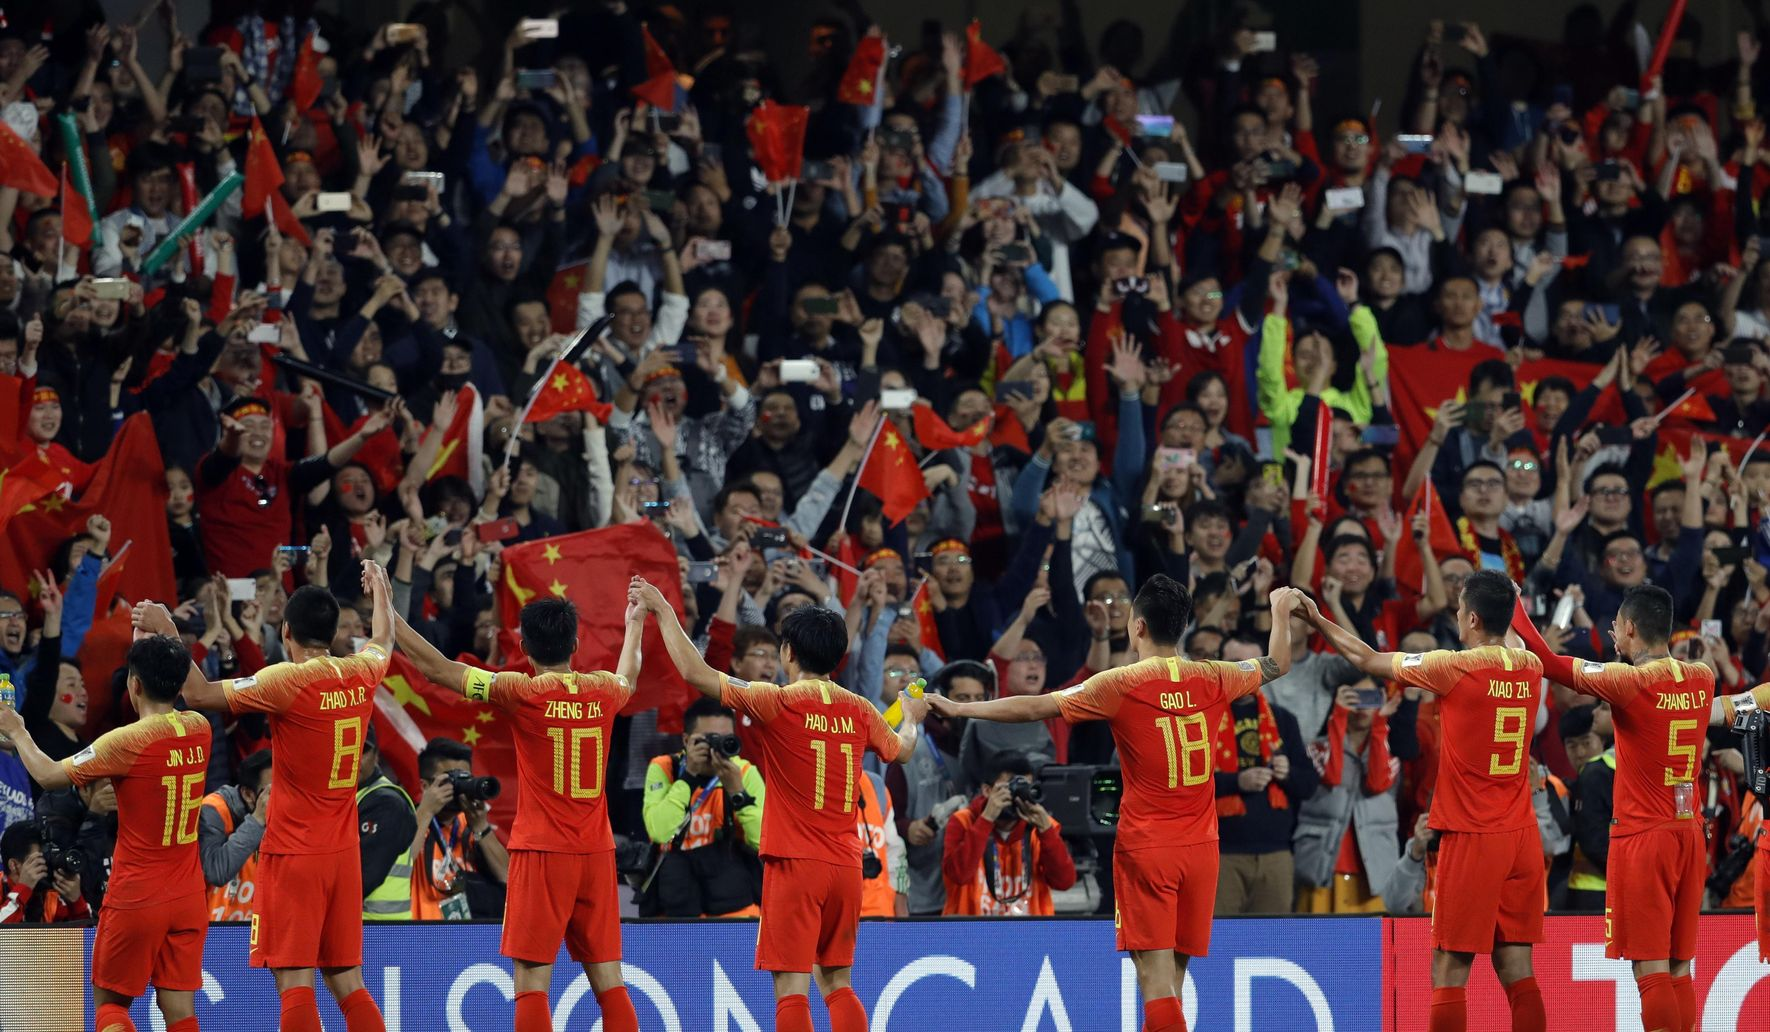 China_soccer_2020_action_plan_17353_c0-57-4387-2614_s1770x1032